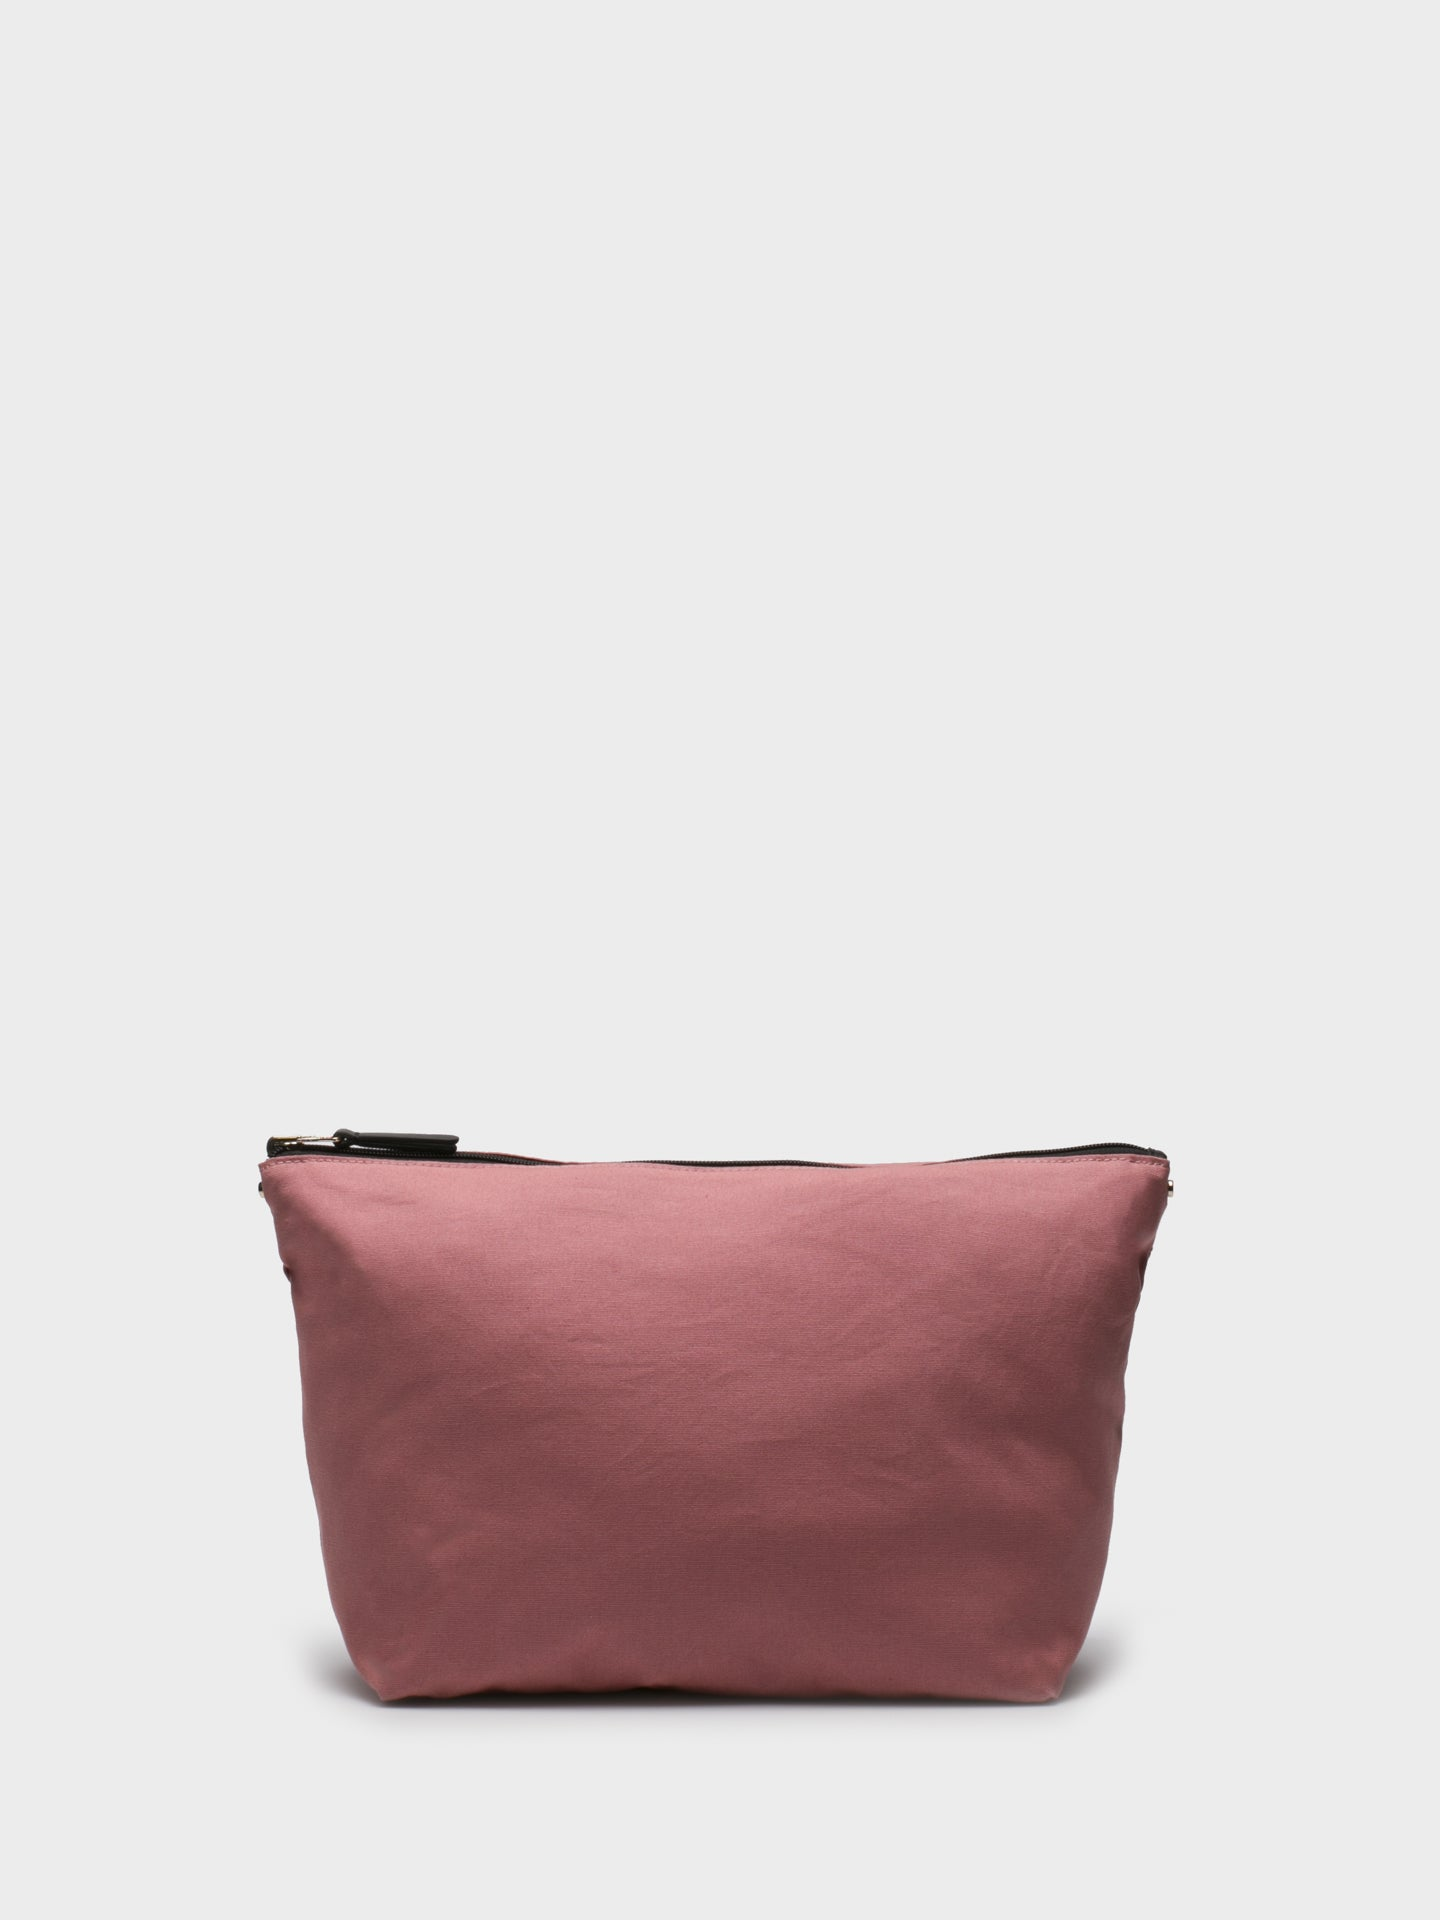 Tous Pink Pouch